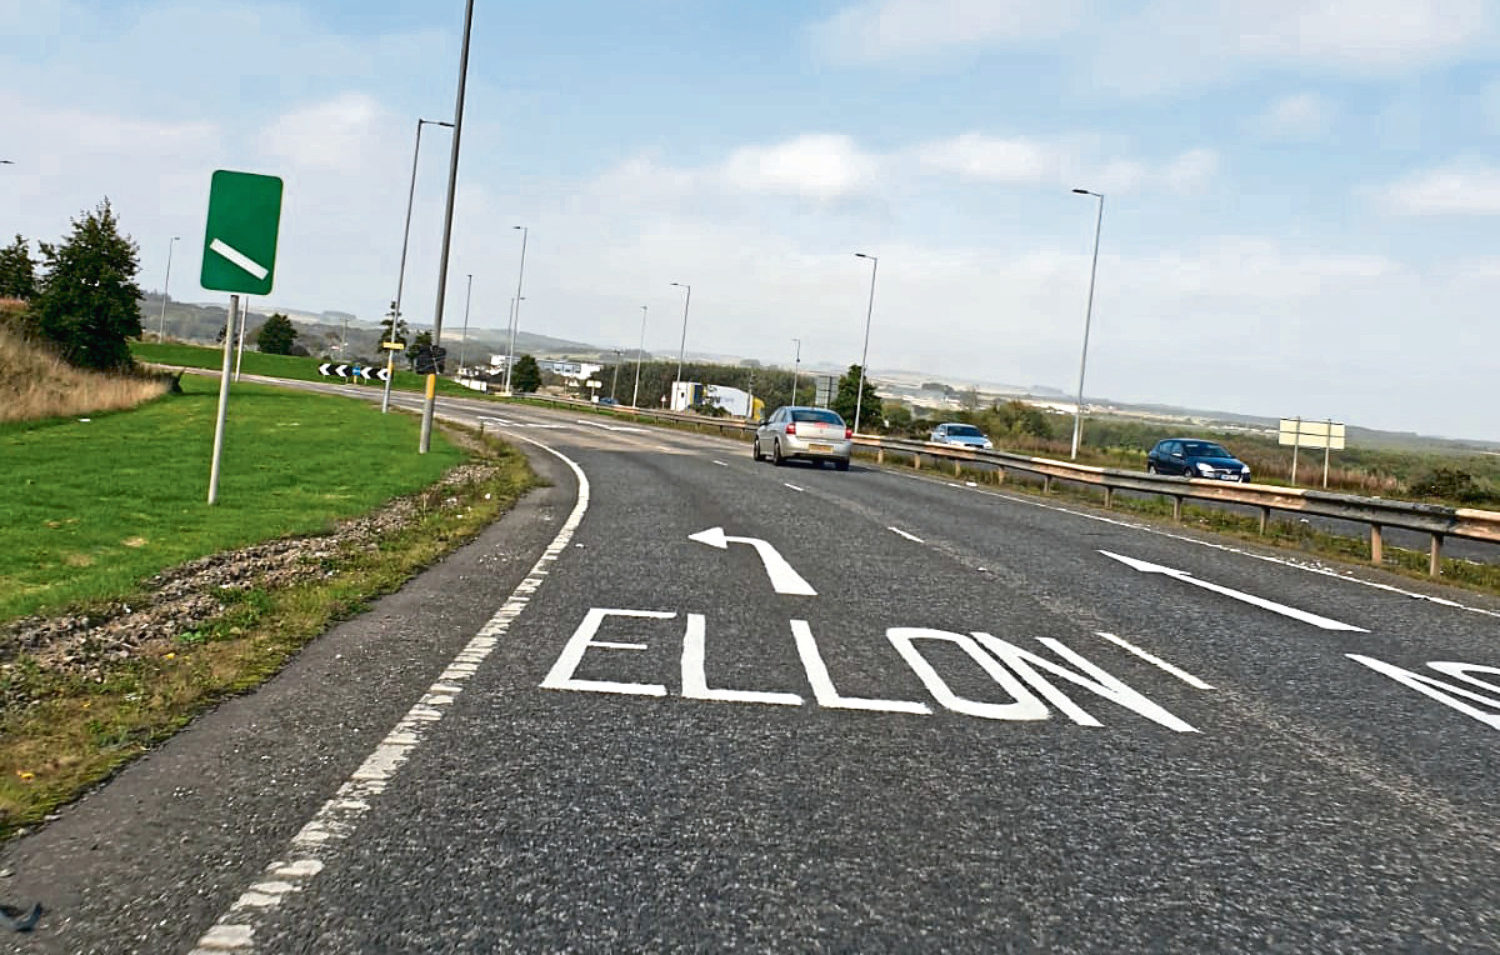 Improvements have been made to markings on the A90 roundabout near Ellon